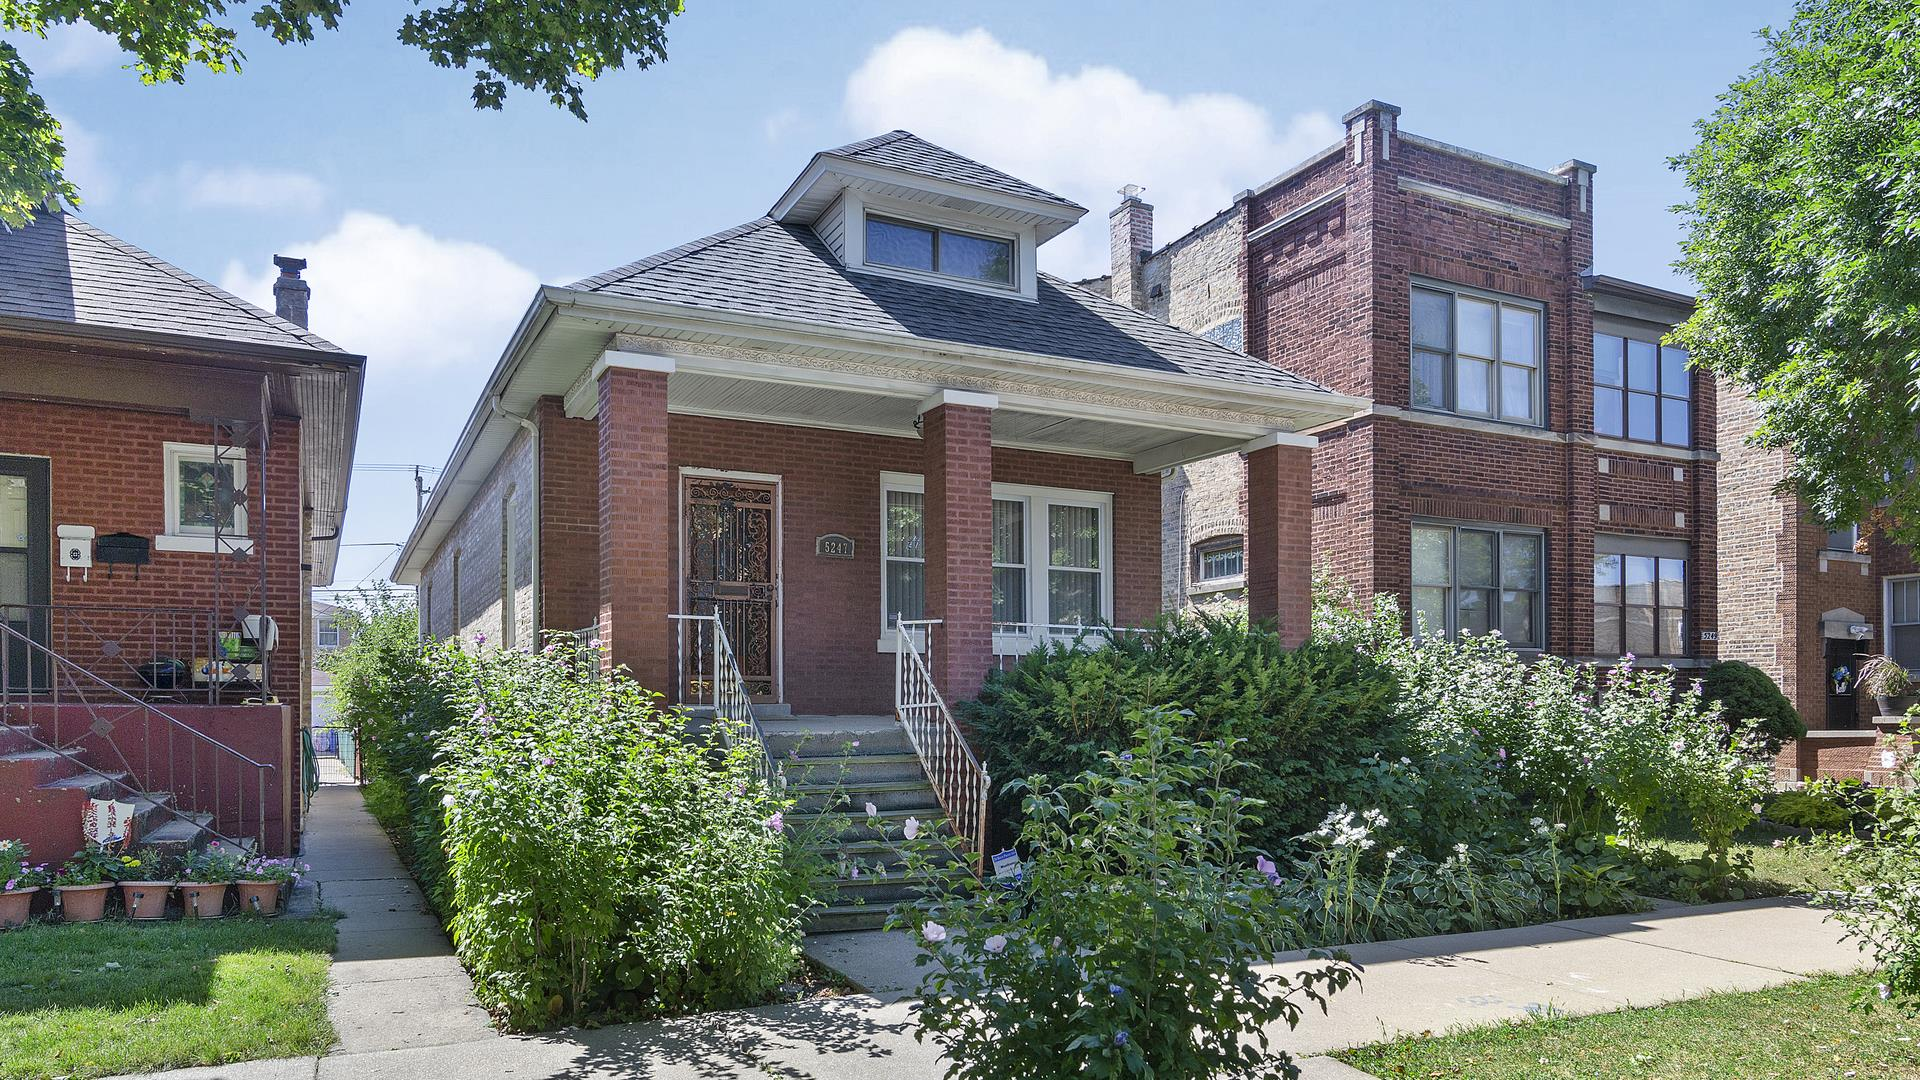 5247 W PATTERSON Avenue, Chicago, IL 60641 - #: 10854094